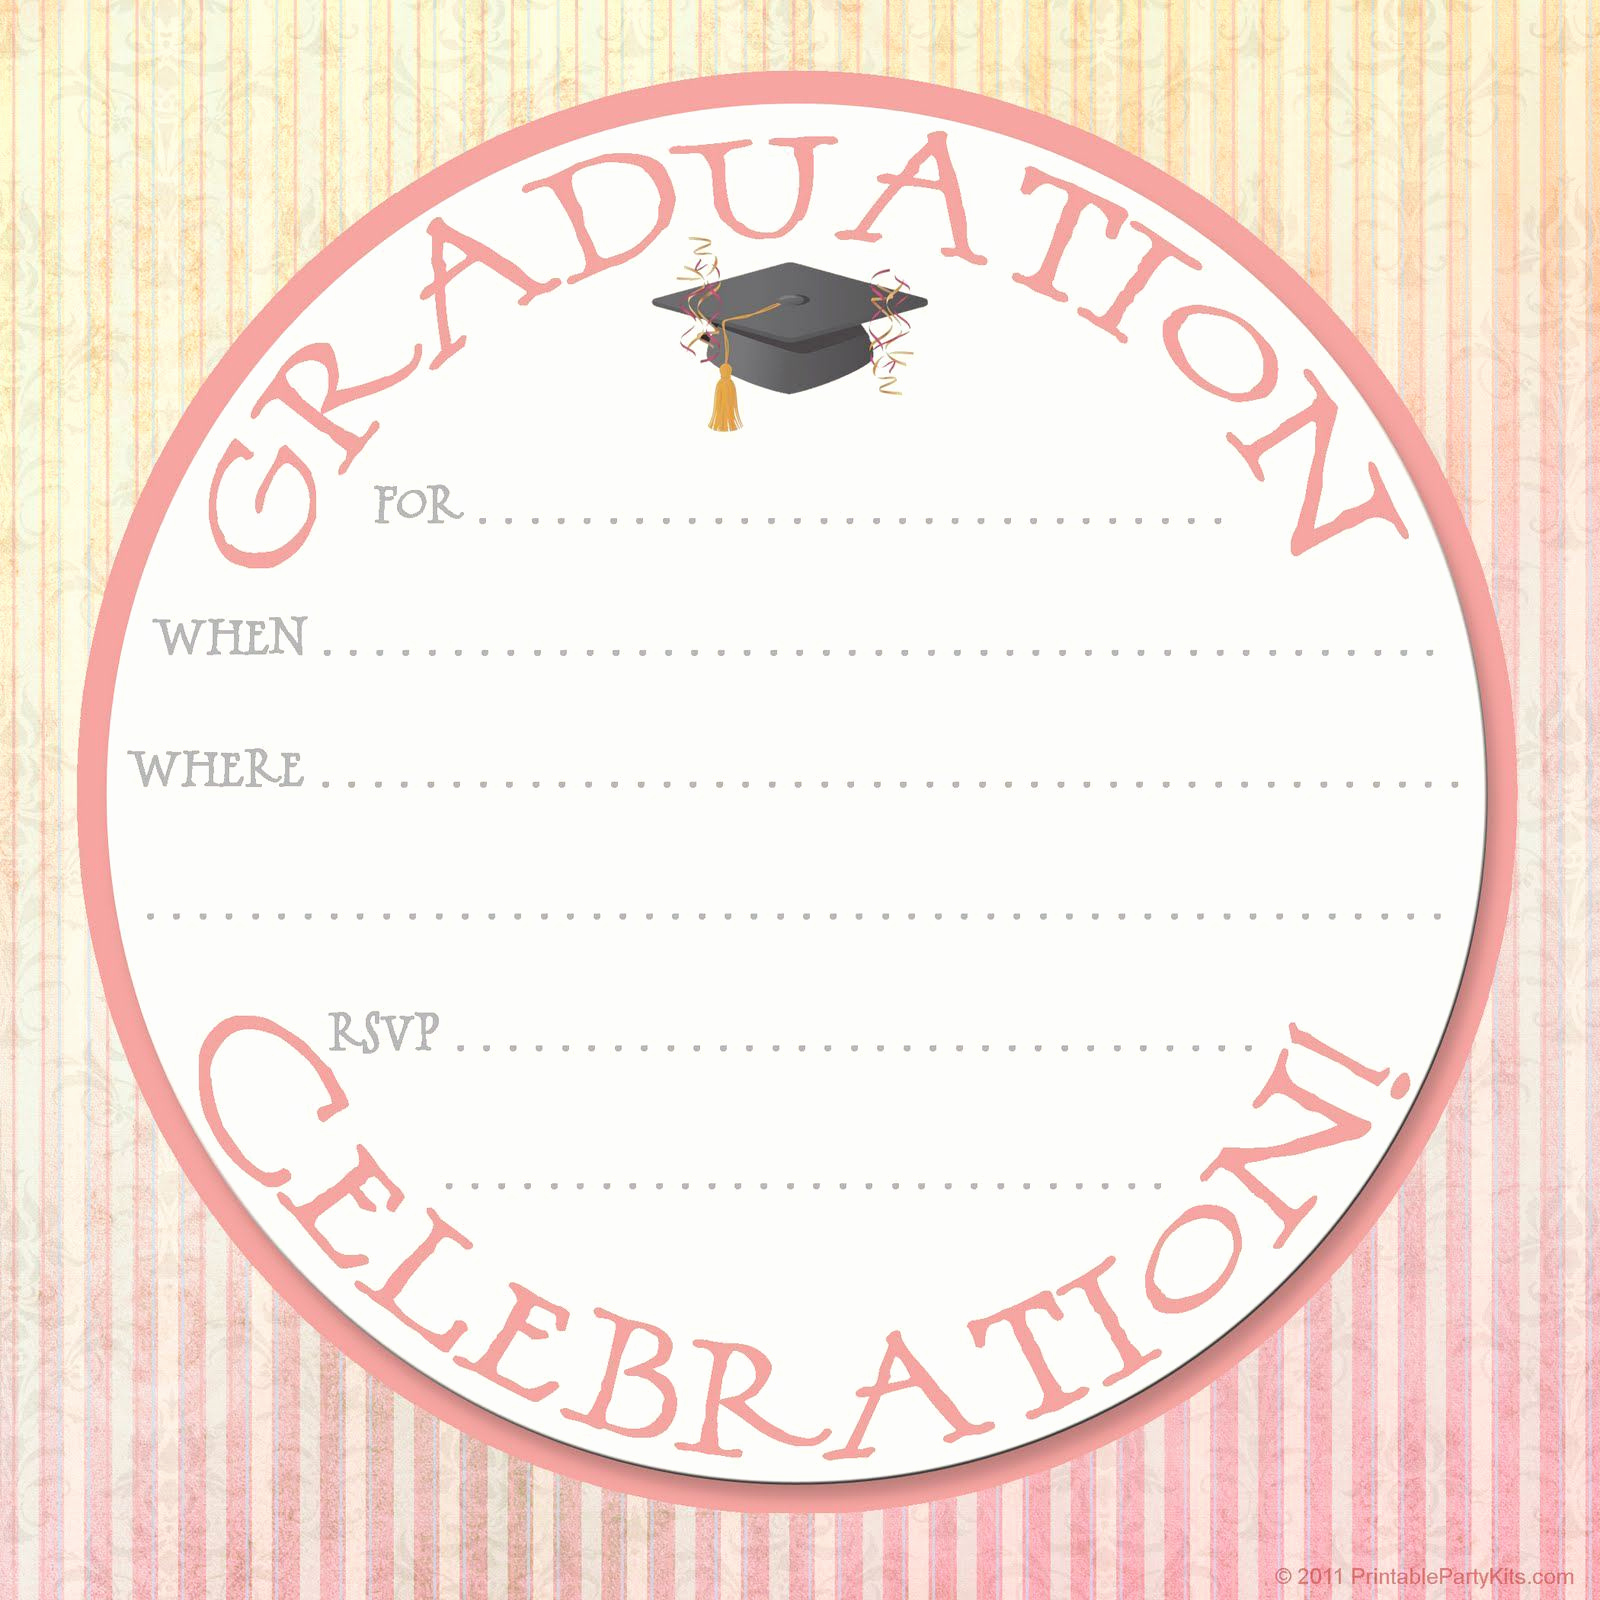 Graduation Party Invitation Templates Lovely Graduation Party Invitations Templates Graduation Party